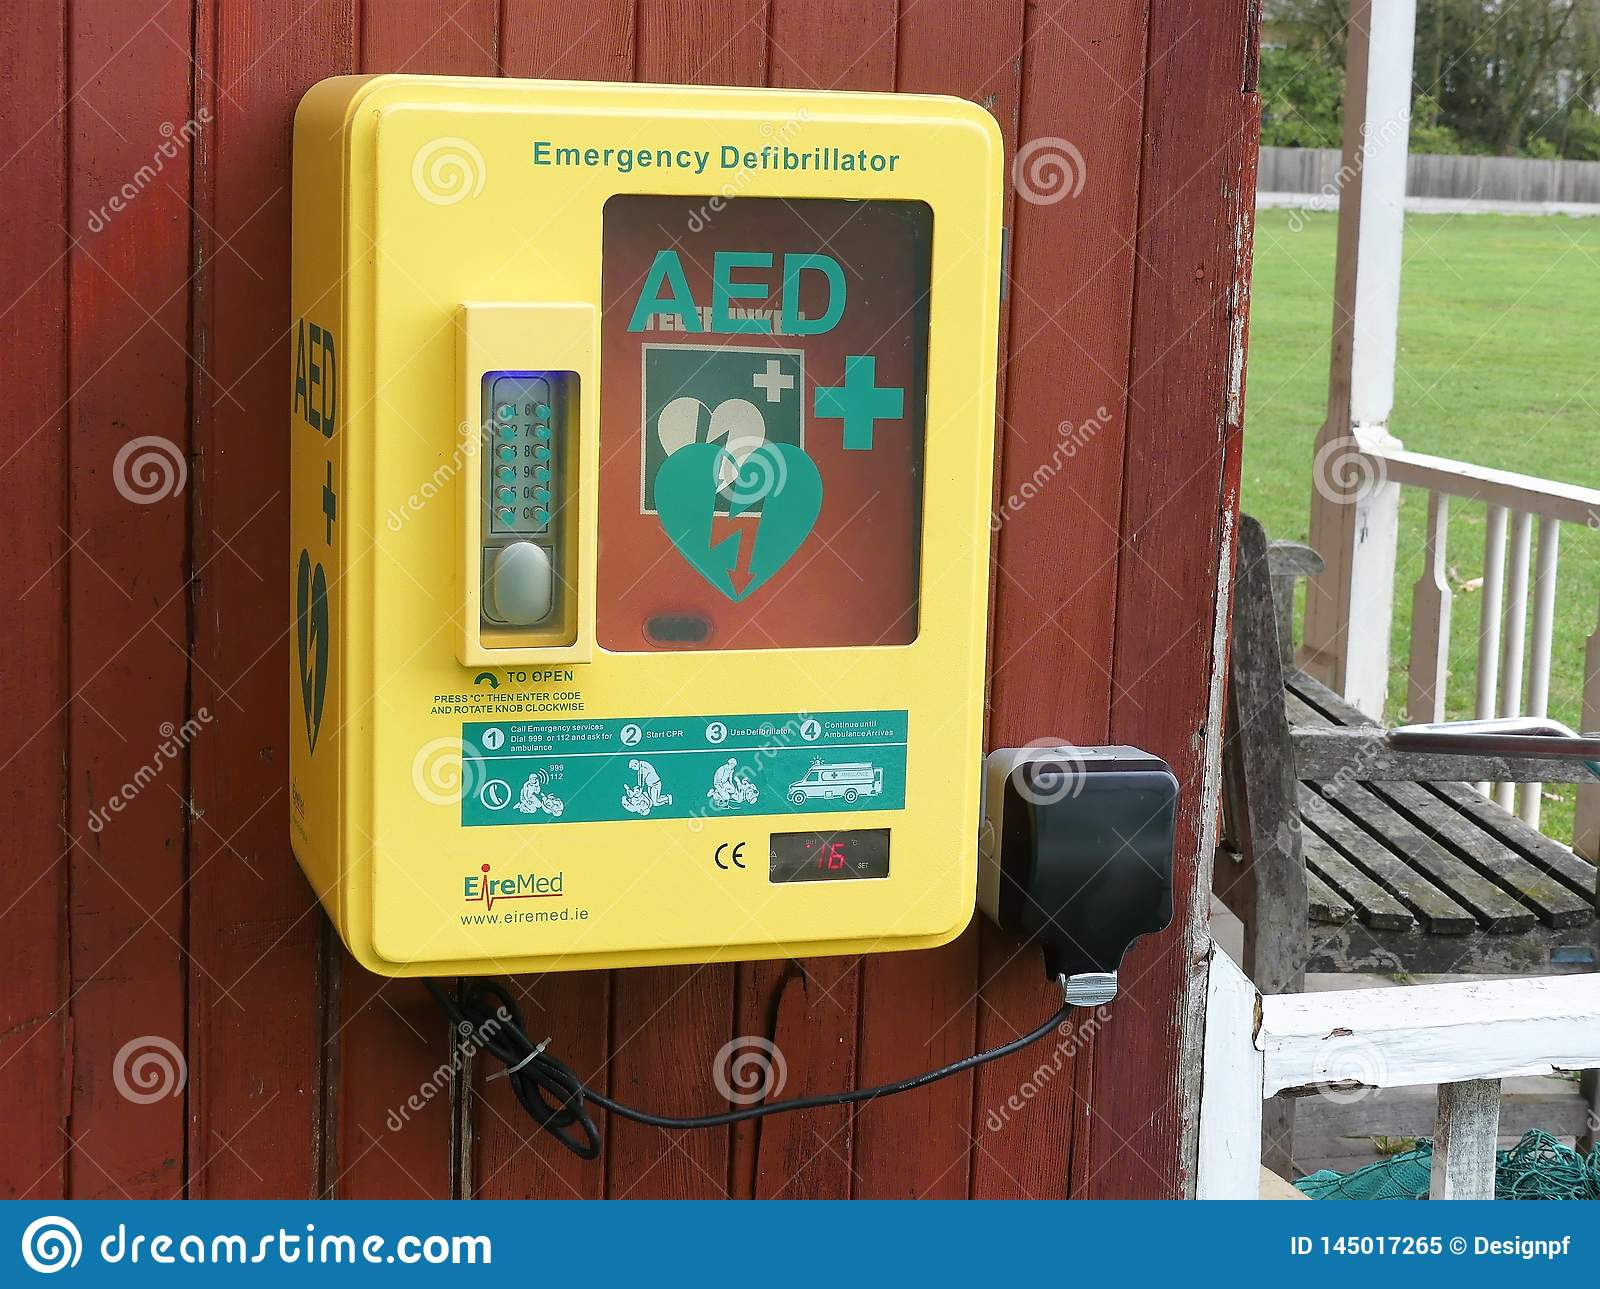 Automatic External Defibrillator AED steel unit mounted to outside wooden wall